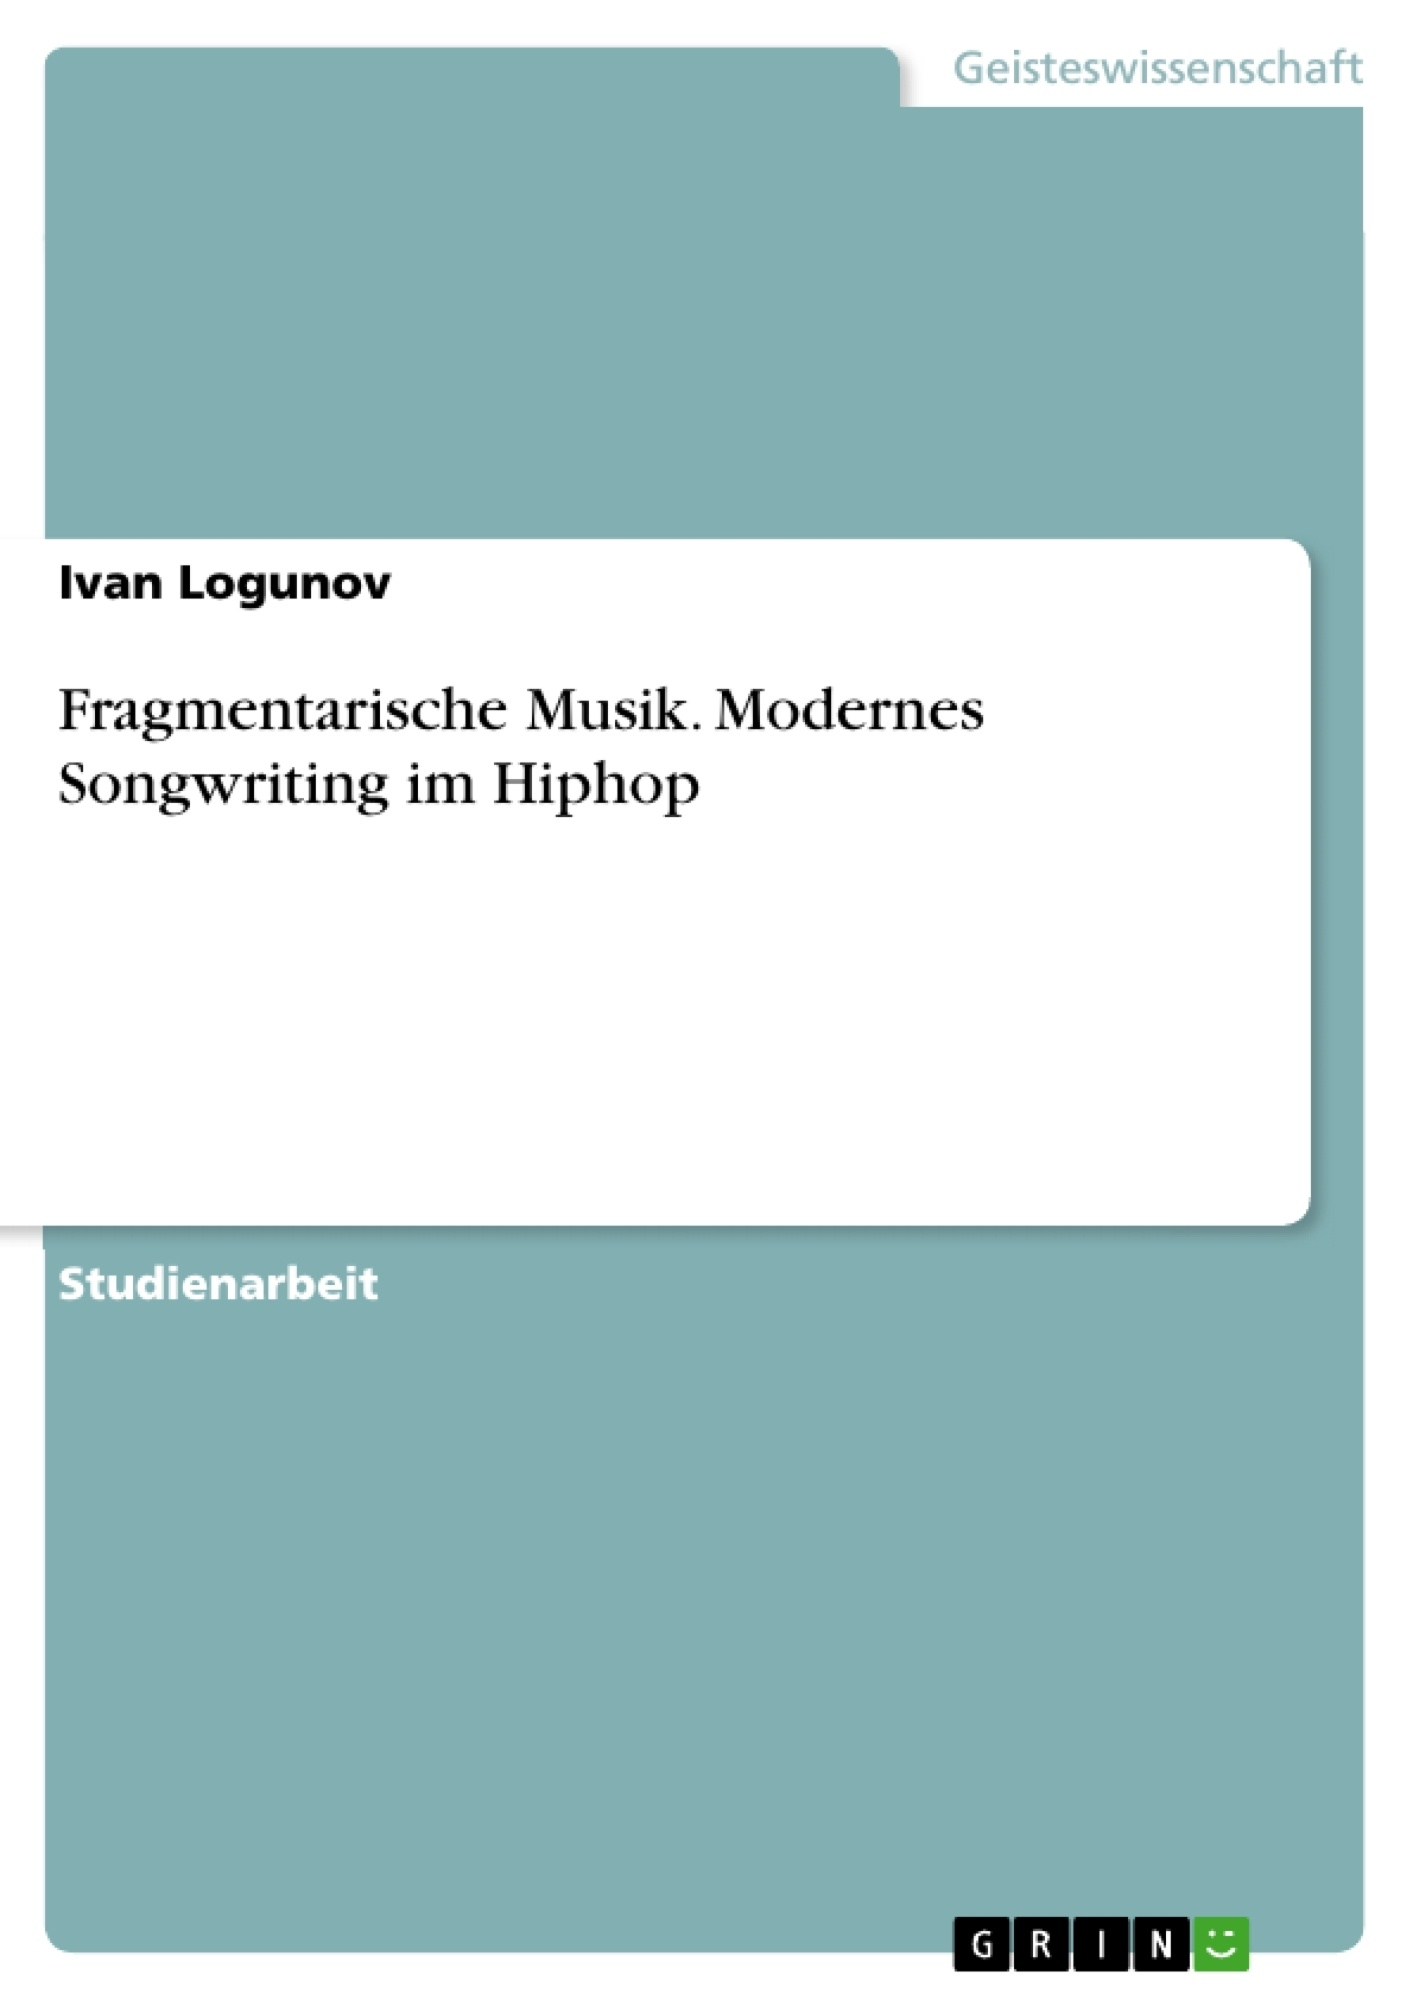 Titel: Fragmentarische Musik. Modernes Songwriting im Hiphop